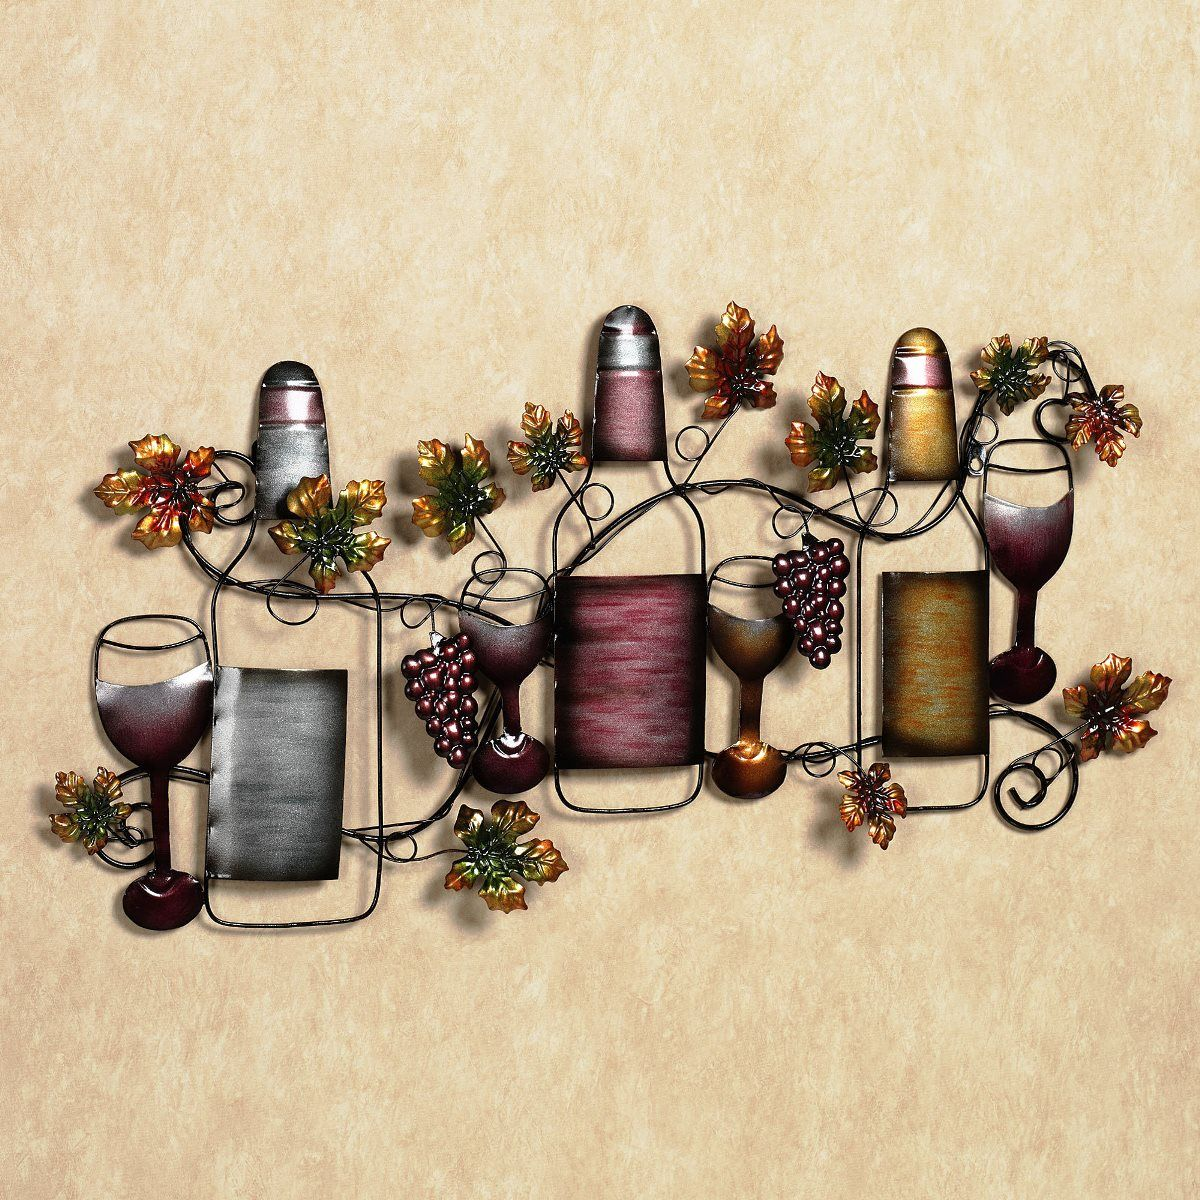 Simple And Home Furnishings Attractive Wall Decor With Custom Wall Decals  Glass Images , Bottle Grapes Flowers Are Colorful